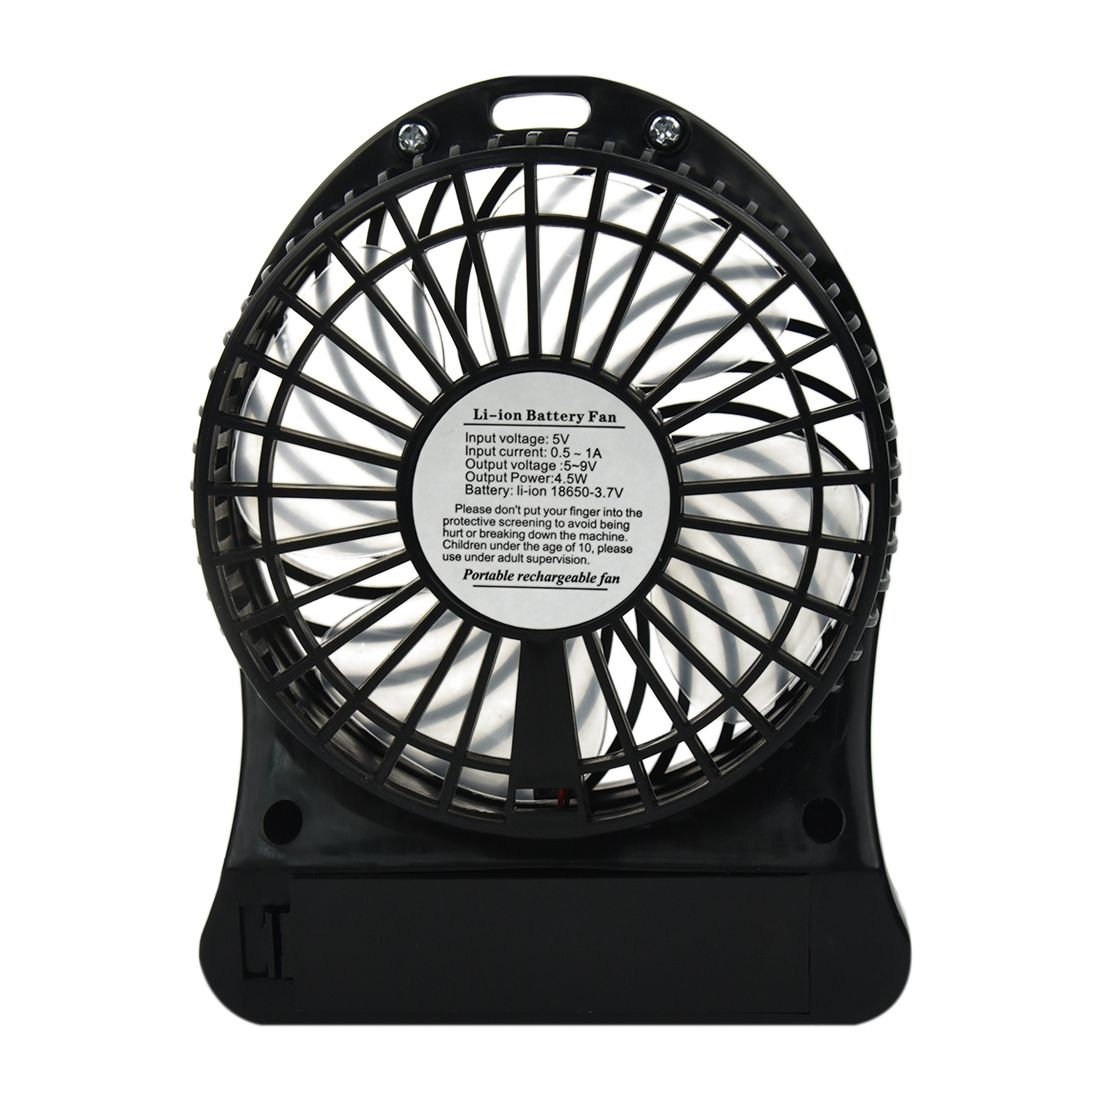 Fashion Latest Portable Rechargeable LED Fan air Cooler Mini Operated Desk USB 18650 Battery